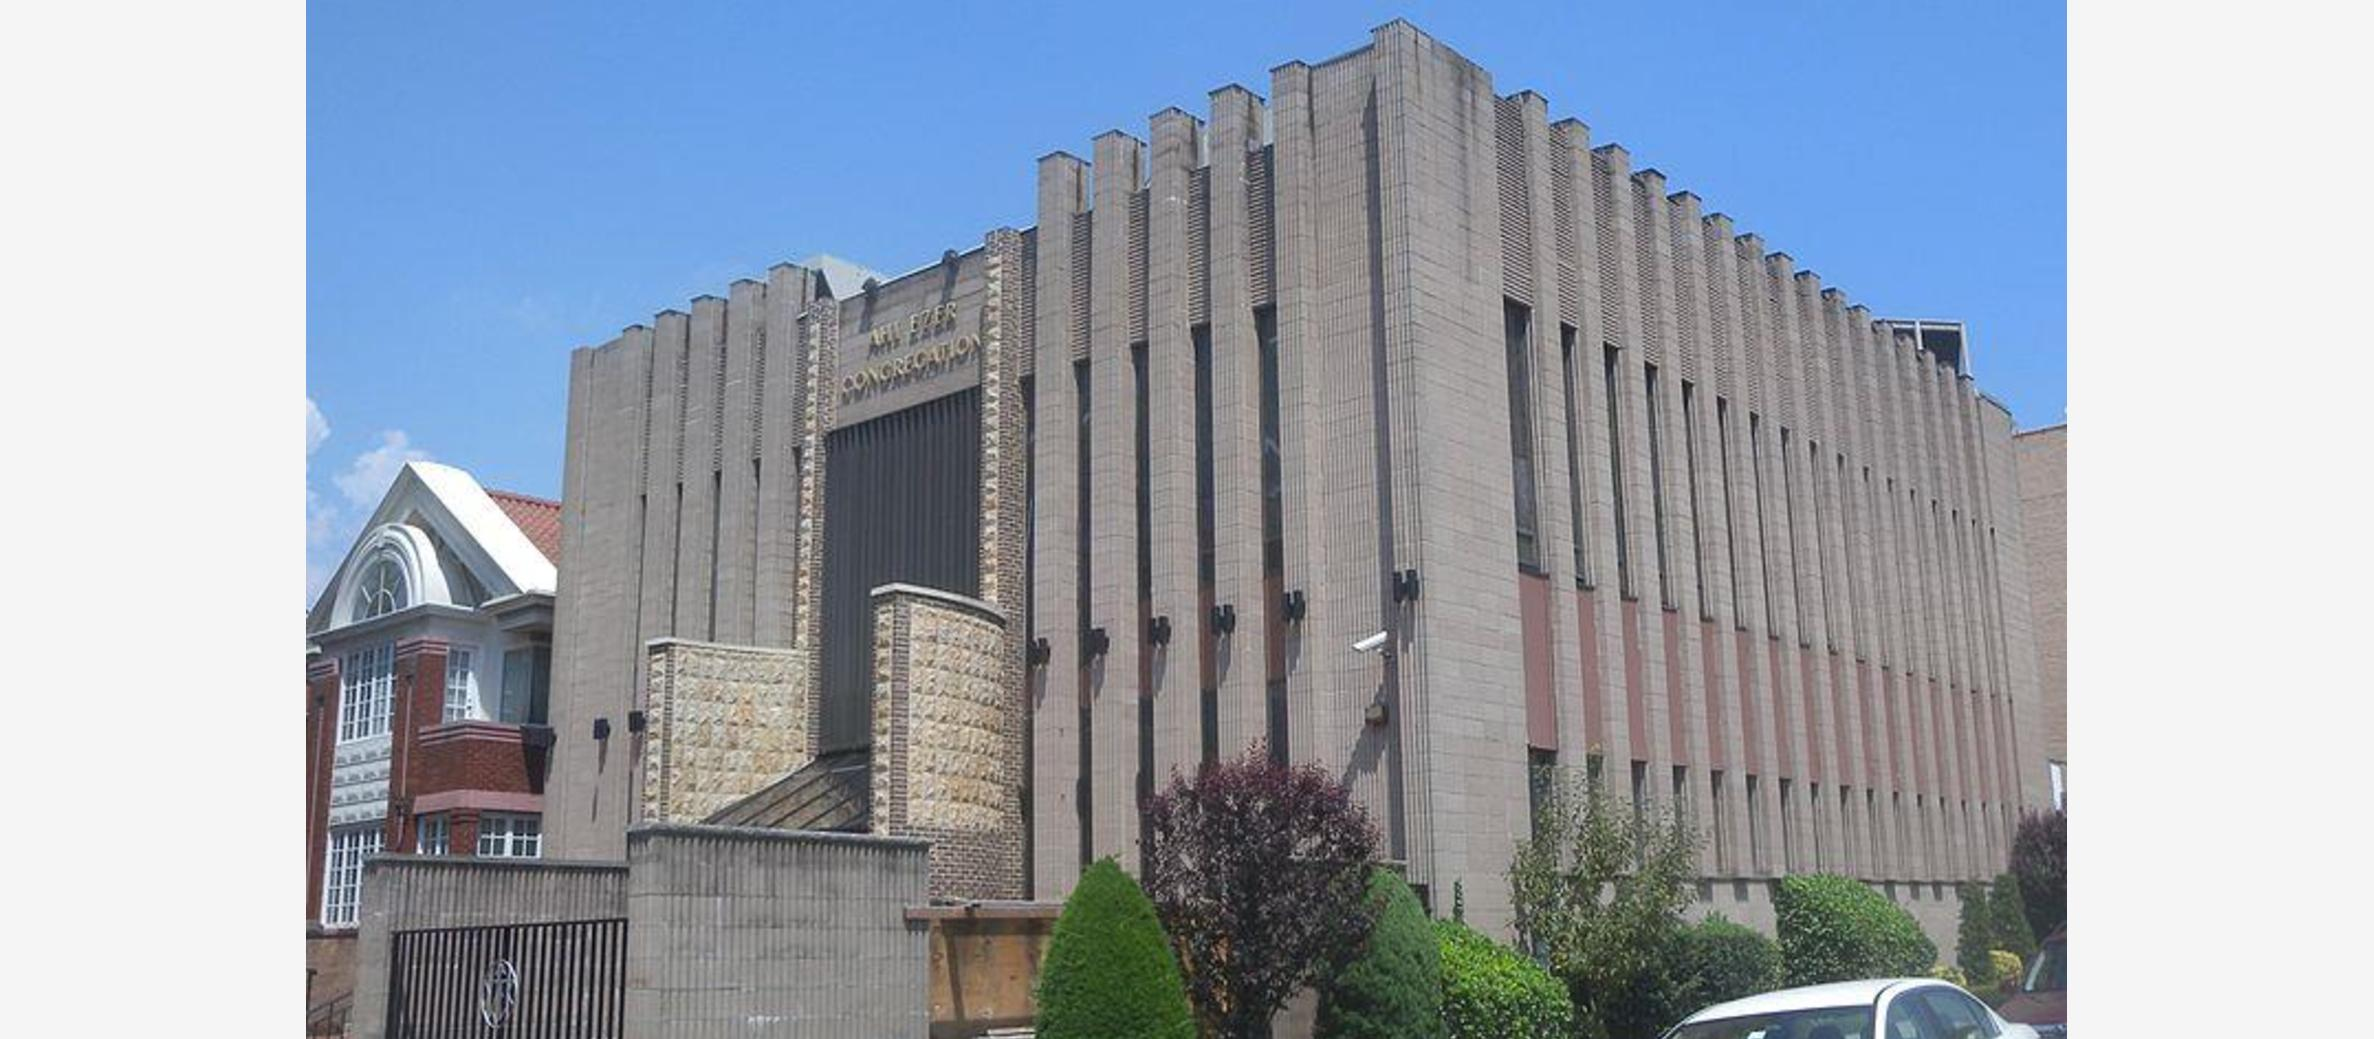 US: Man shouting anti-Semitic slurs tries to enter Brooklyn synagogue